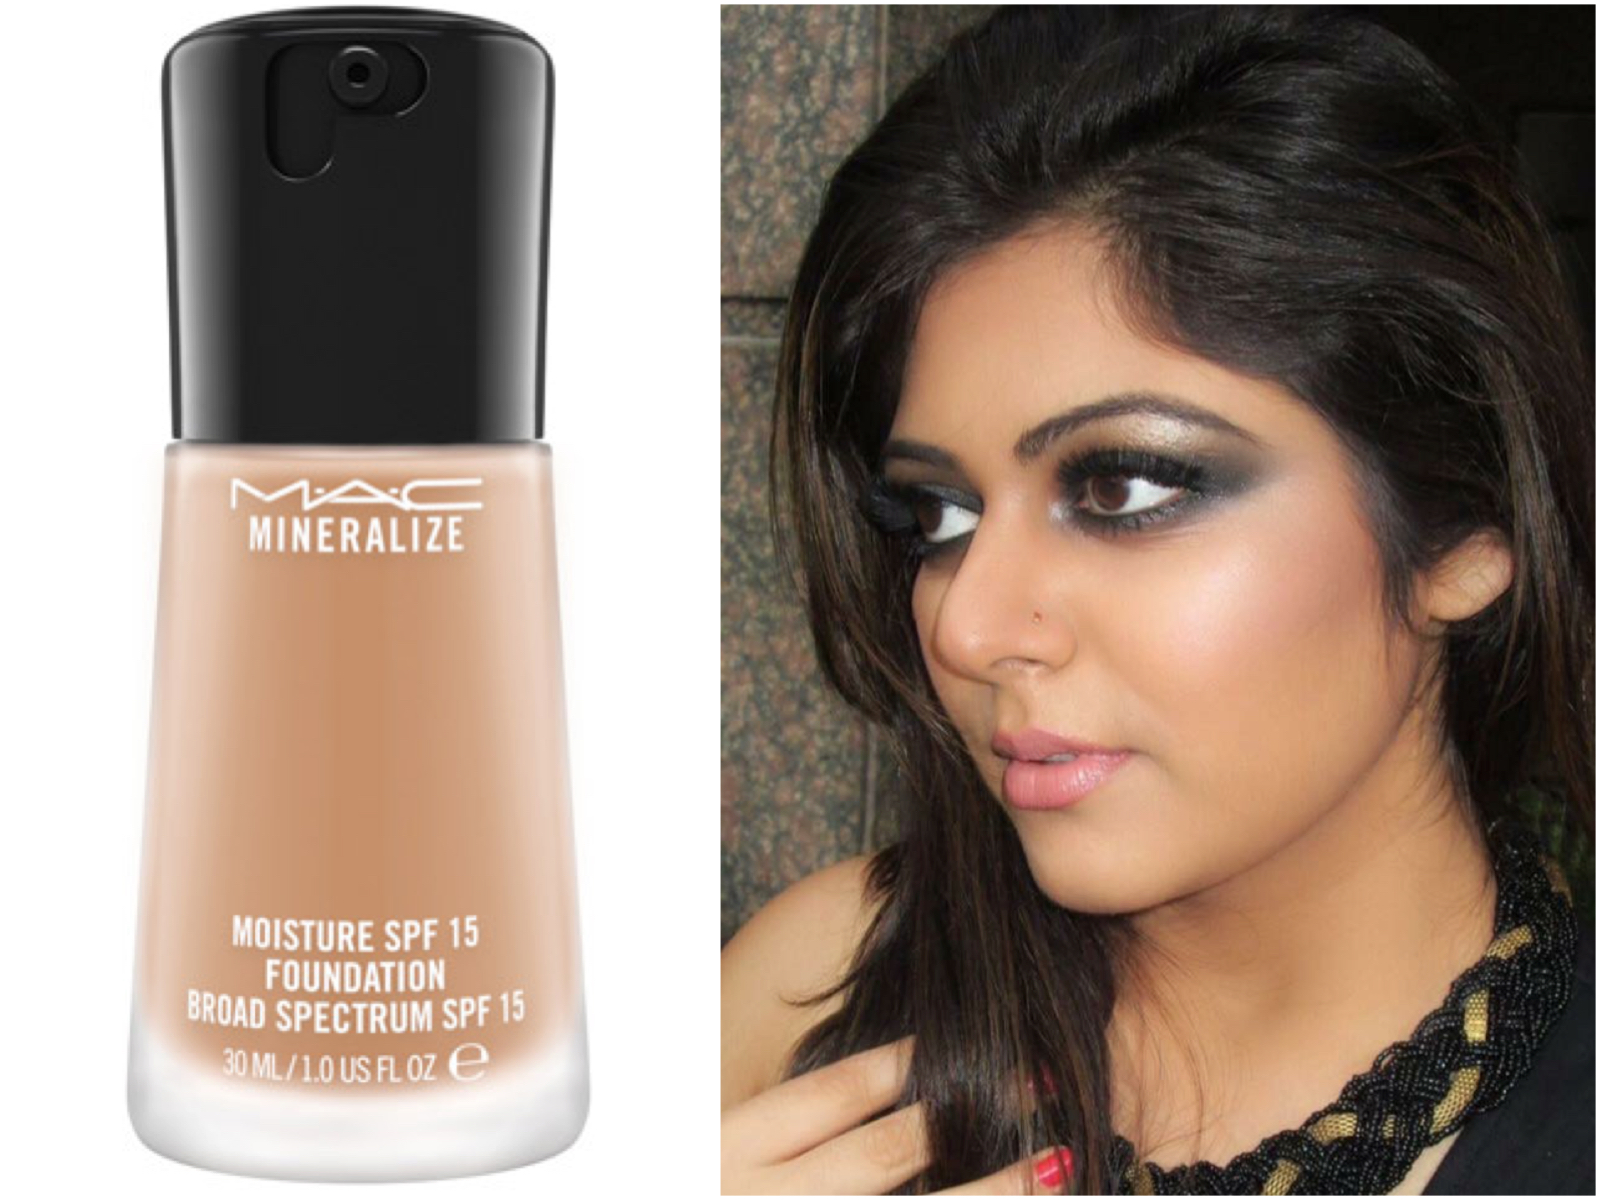 Mac Mineralize Moisture Spf 15 Foundation Review Swatches